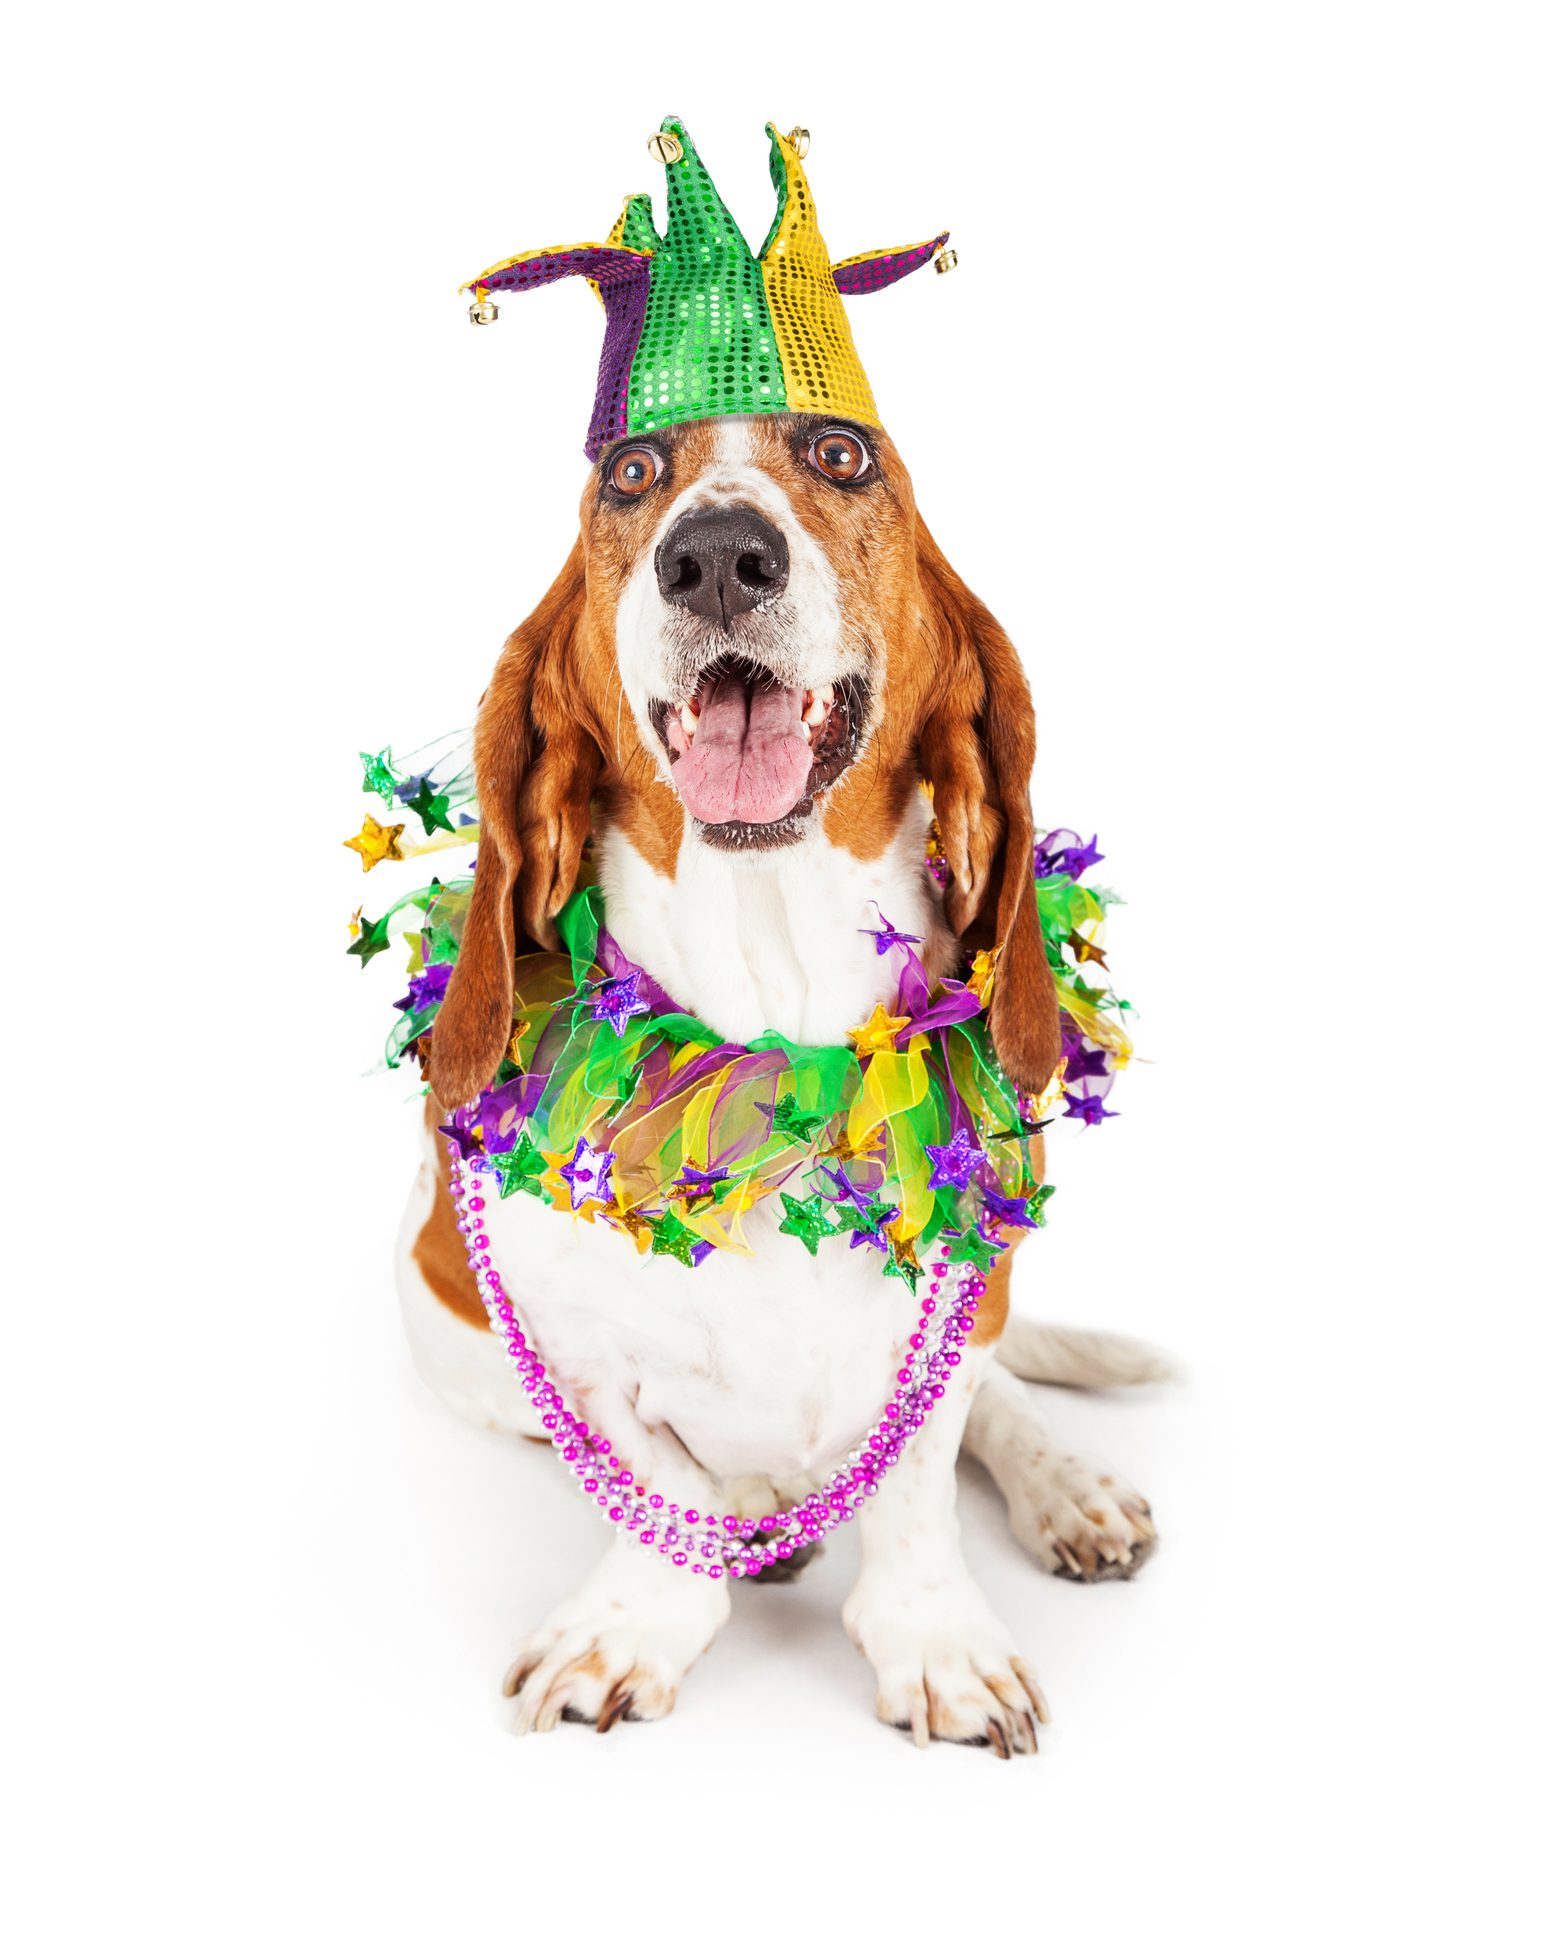 dog wearing mardi gras beads and hat